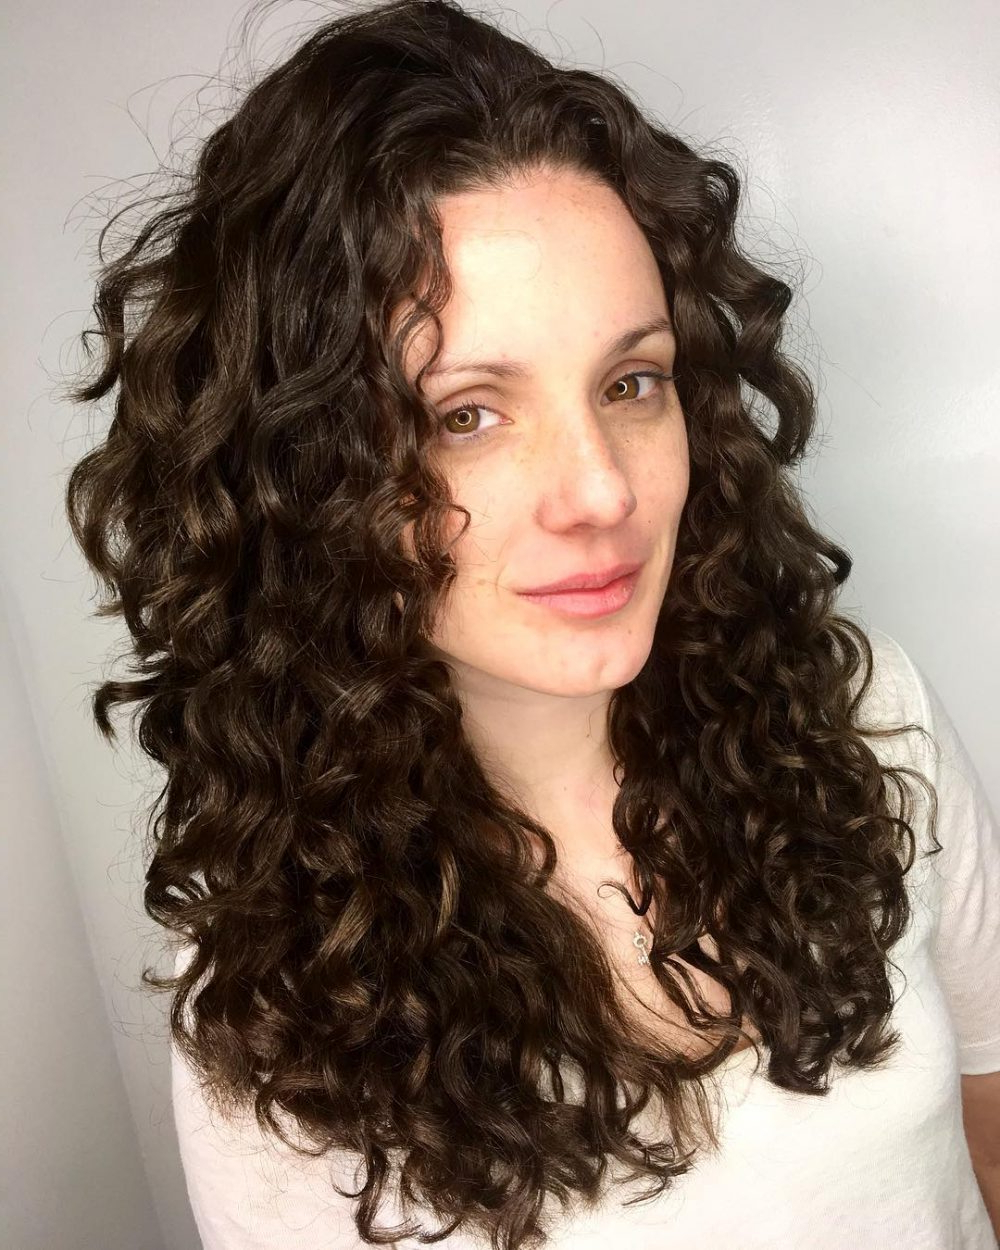 25 Cutest Long Curly Hair Ideas Of 2018 Throughout Casual Scrunched Hairstyles For Short Curly Hair (View 14 of 20)